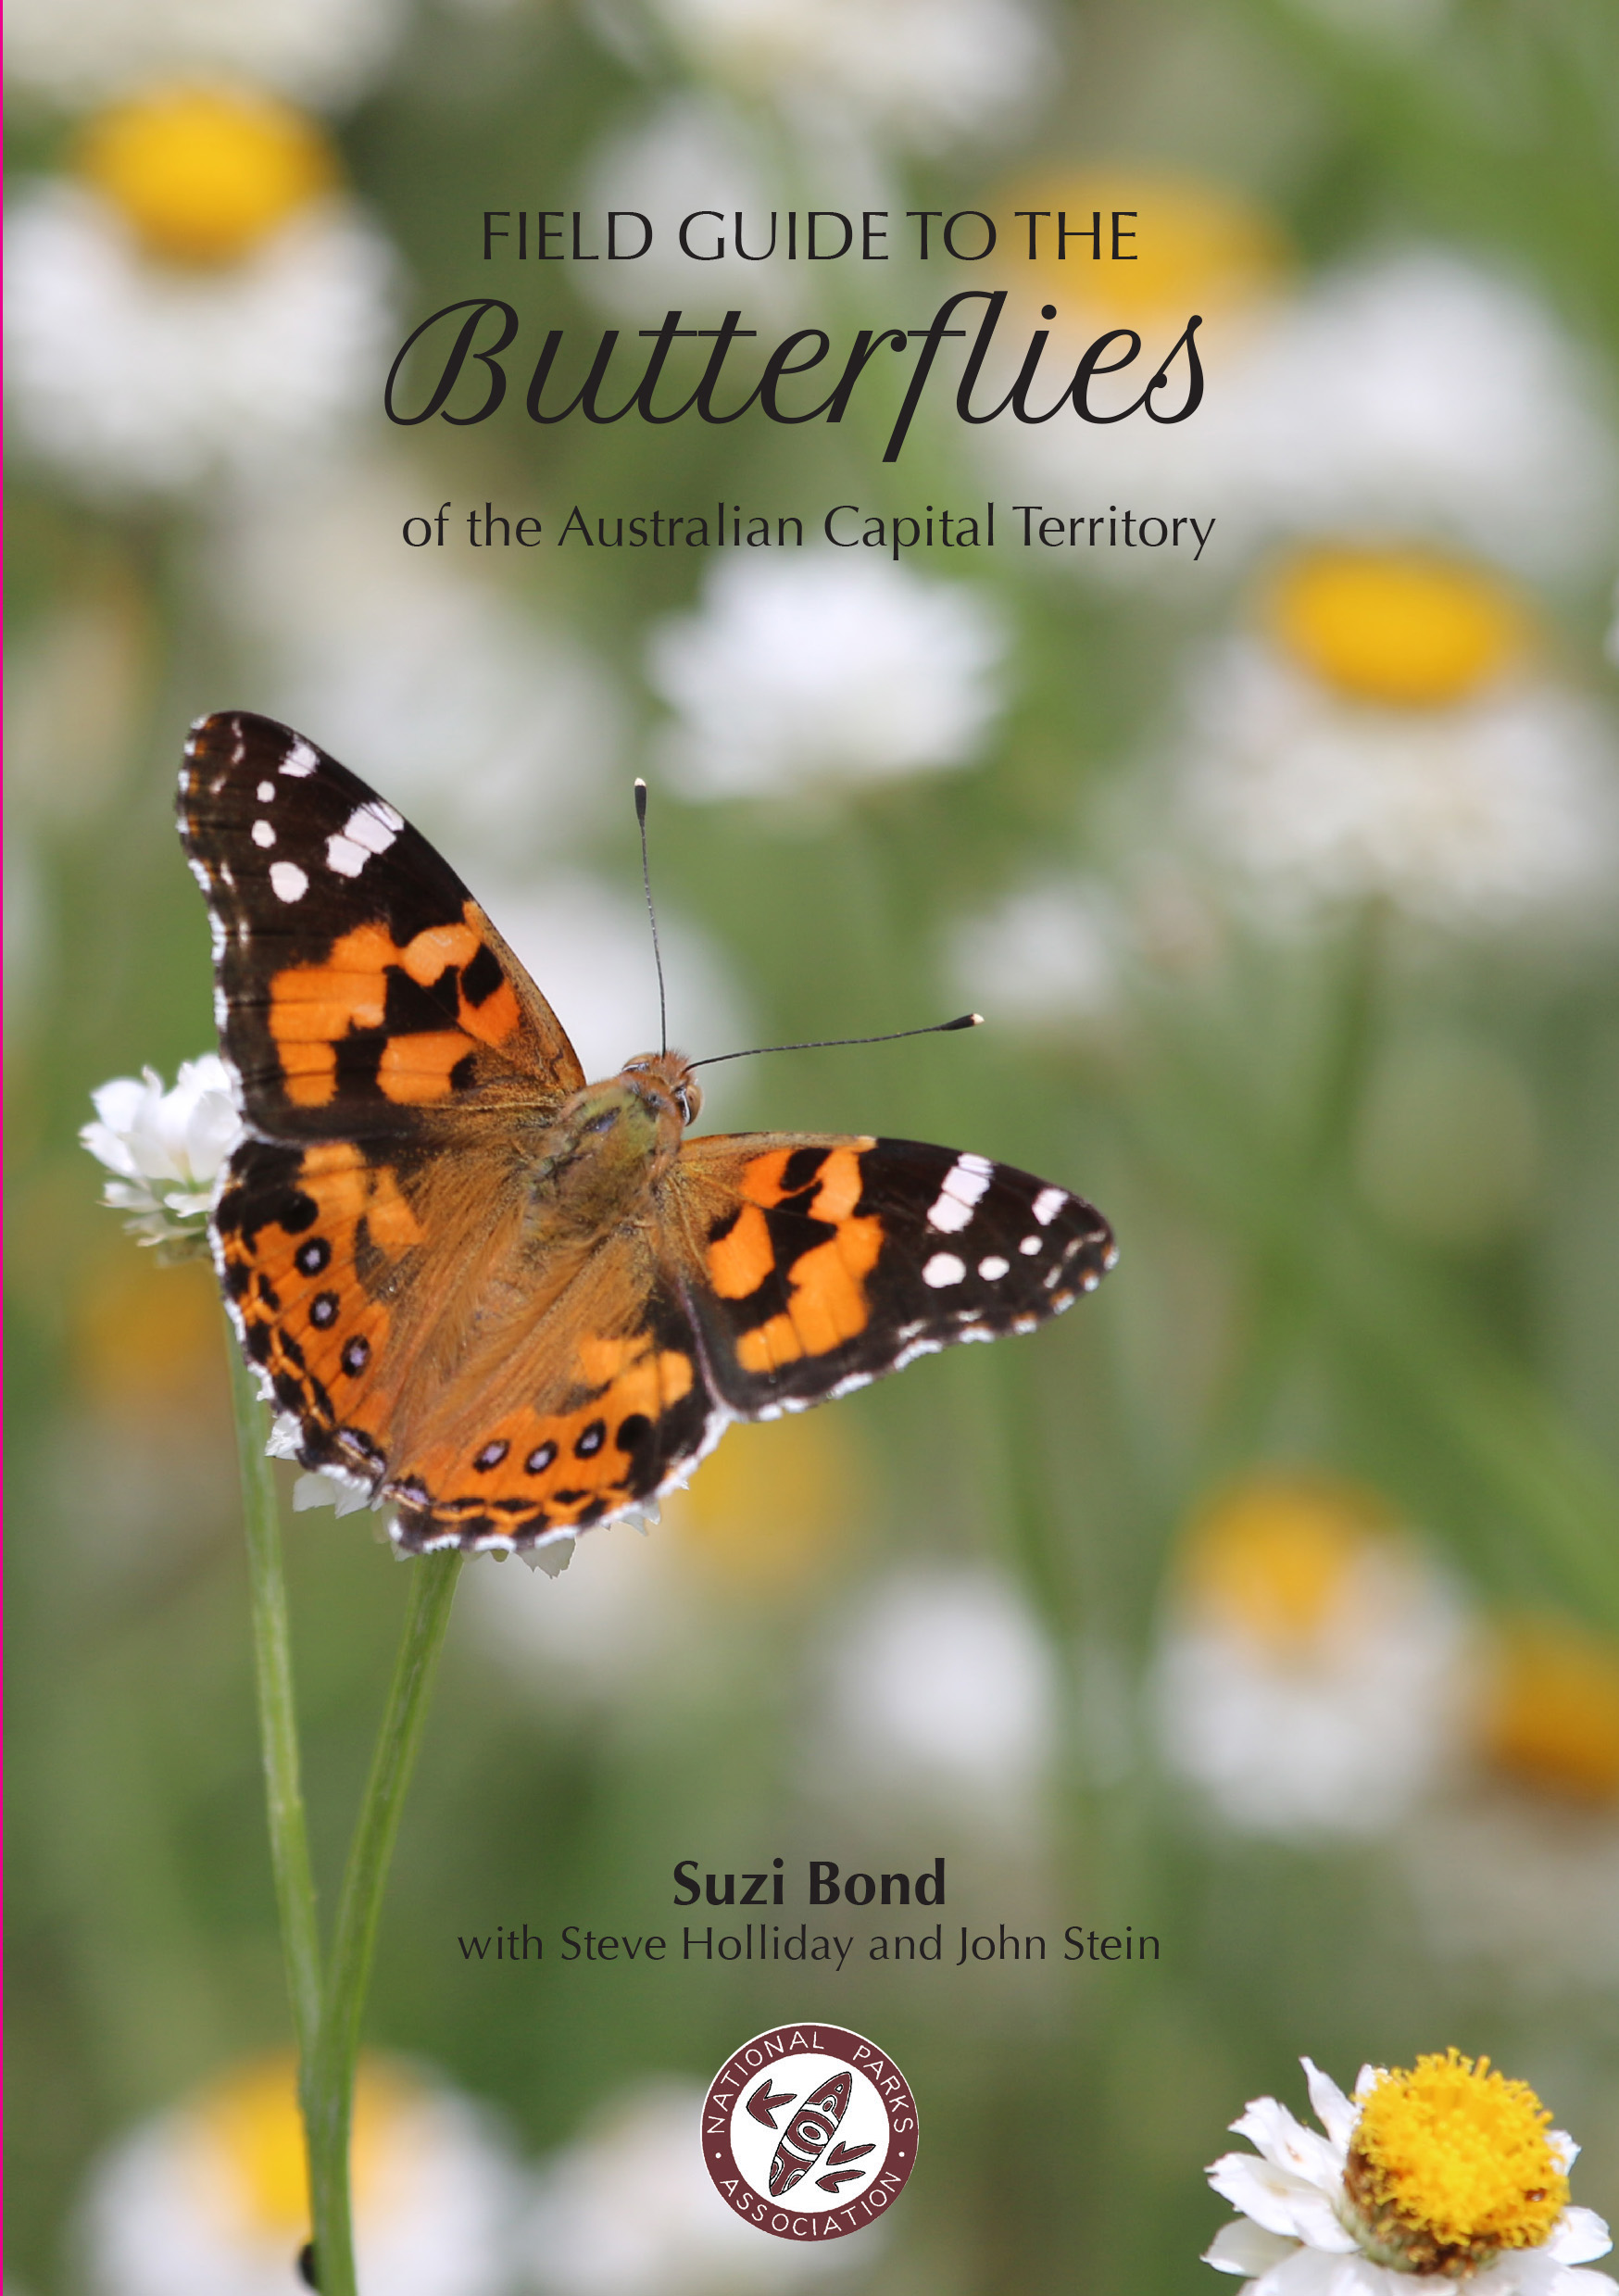 Field guide to the Butterflies of the ACT